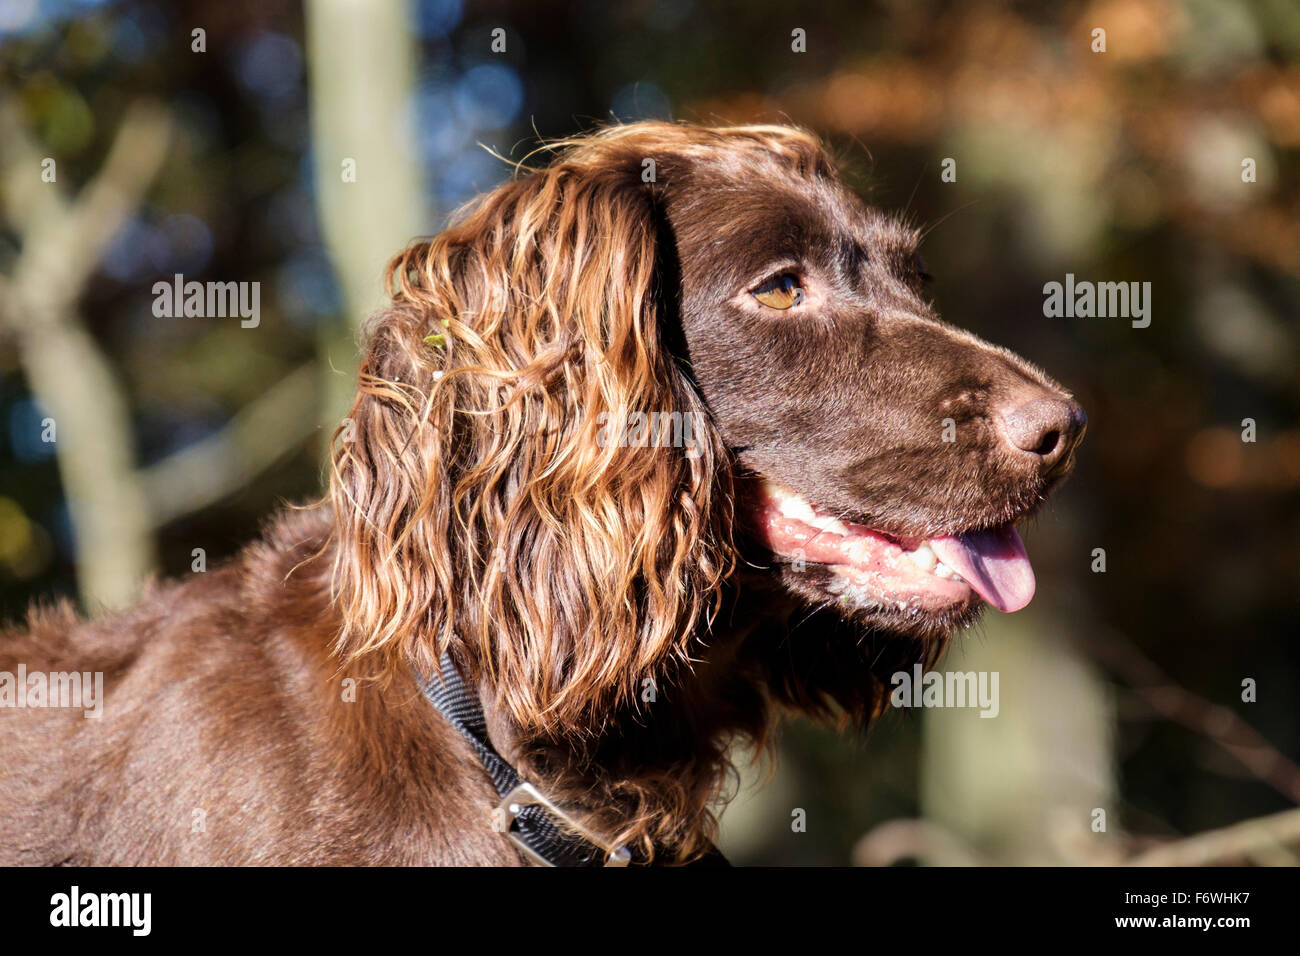 Chocolate brown (liver) English Cocker Spaniel pet dog head portrait side profile in woodland outdoors. UK Britain - Stock Image